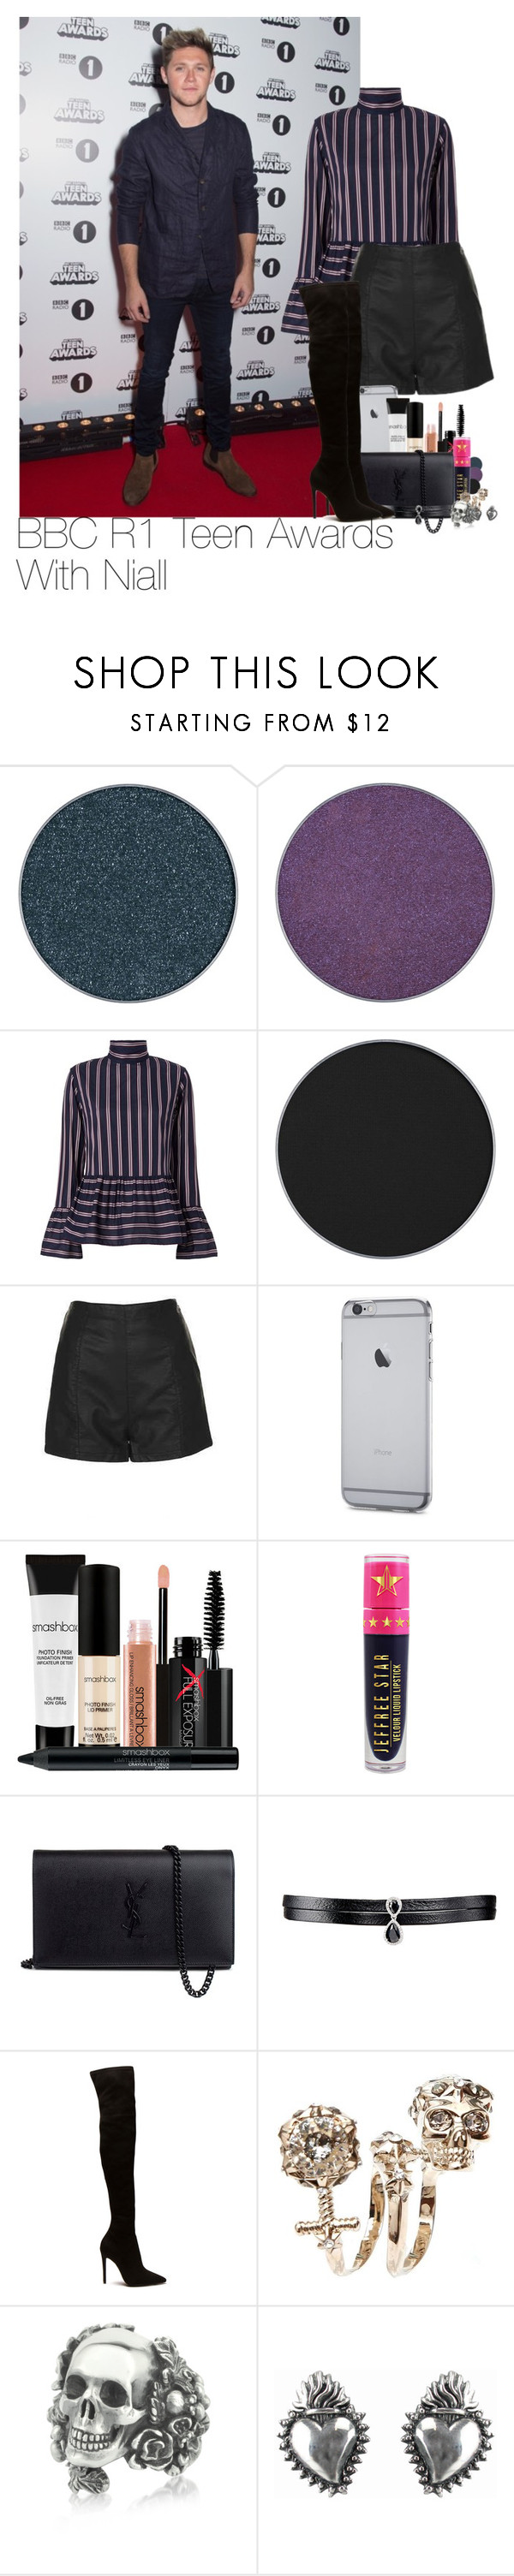 """Niall~#45"" by lauren-beth-owens ❤ liked on Polyvore featuring Anastasia Beverly Hills, Le Sarte Pettegole, Topshop, Smashbox, Jeffree Star, Yves Saint Laurent, Fallon, Alexander McQueen, Ugo Cacciatori and NiallHoran"